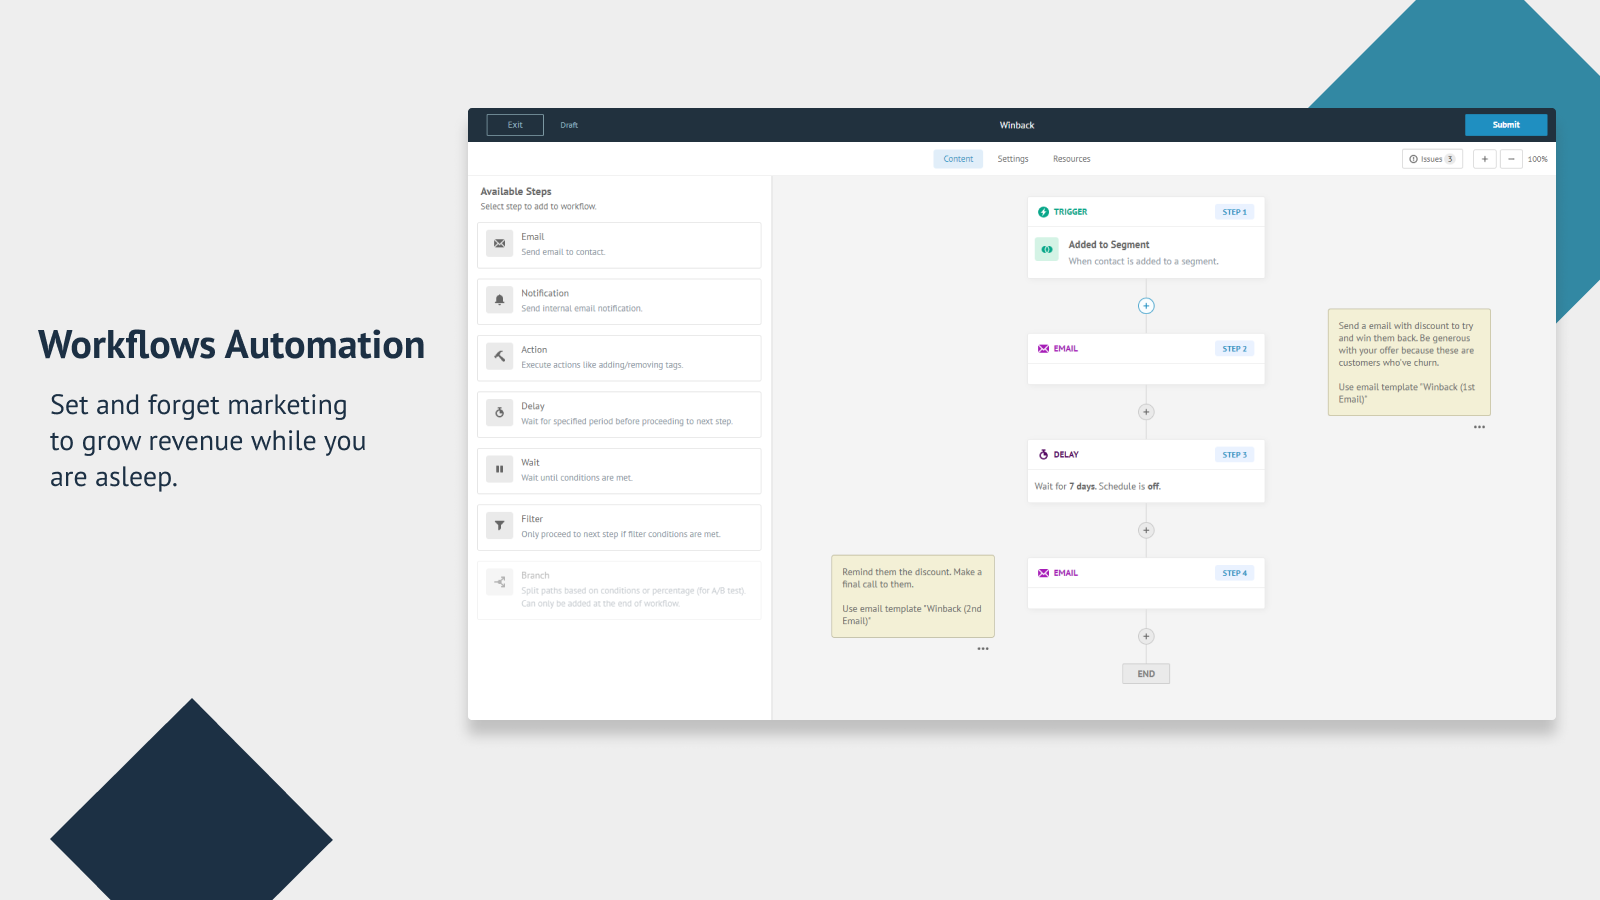 Workflows Automation